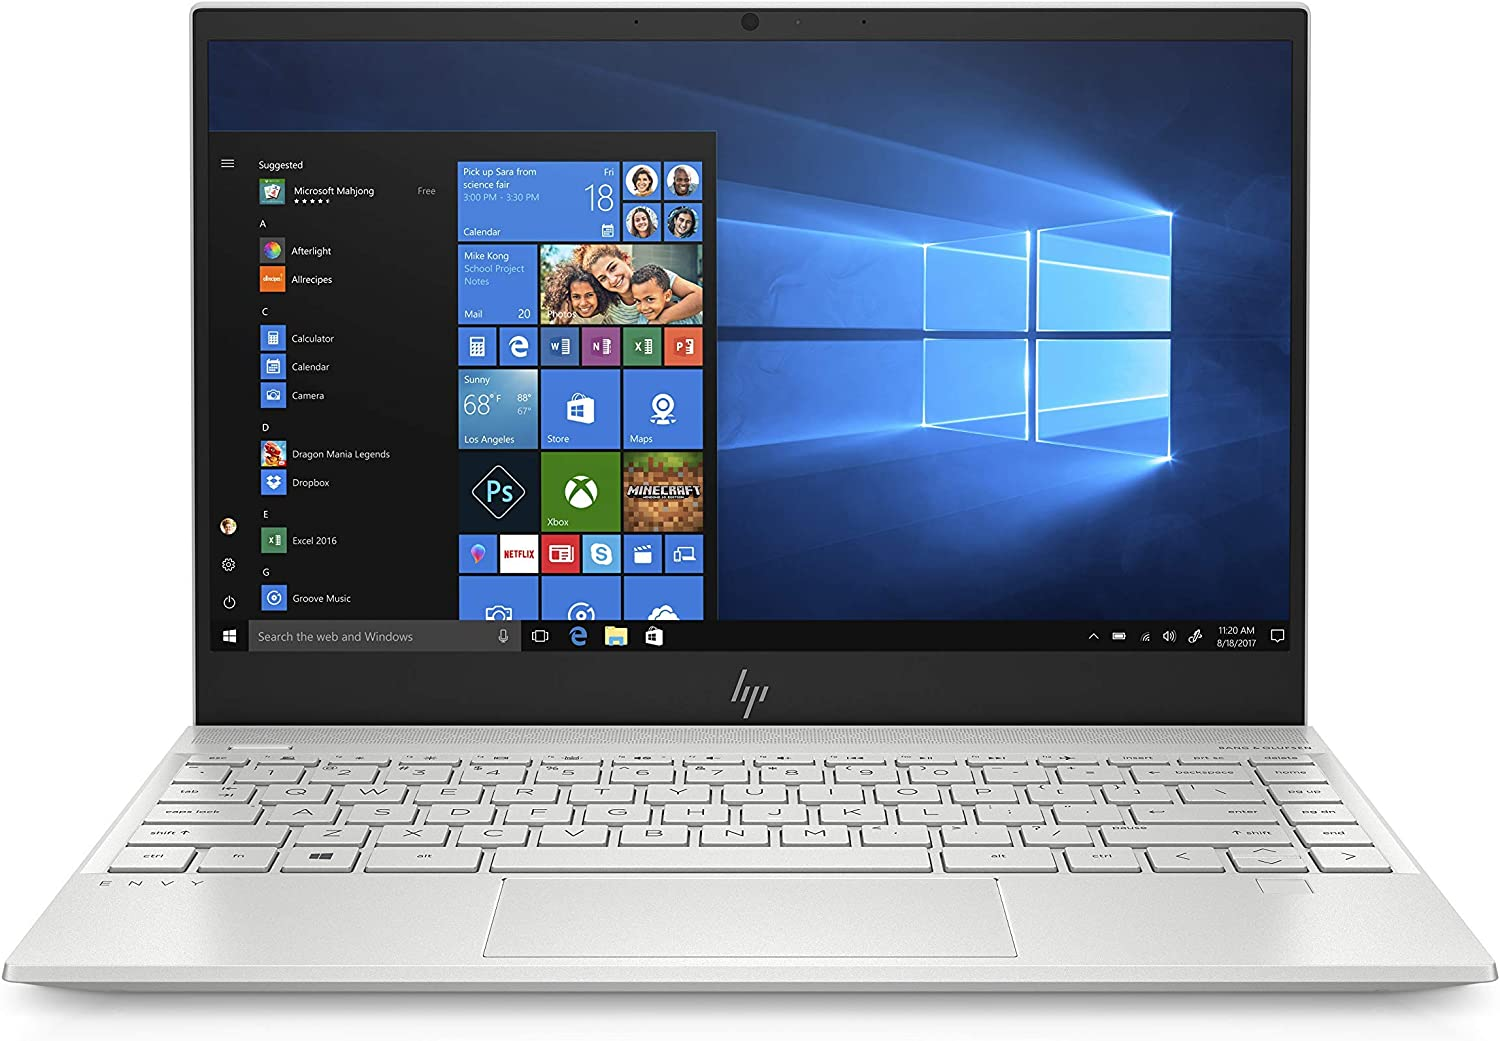 "HP Envy 13"" Thin Laptop W/ Fingerprint Reader, FHD Touchscreen, Intel Core i7-8565U, 8GB SDRAM, 256GB SSD, Windows 10 Home (13-aq0005nr, Natural Silver) (Renewed)"